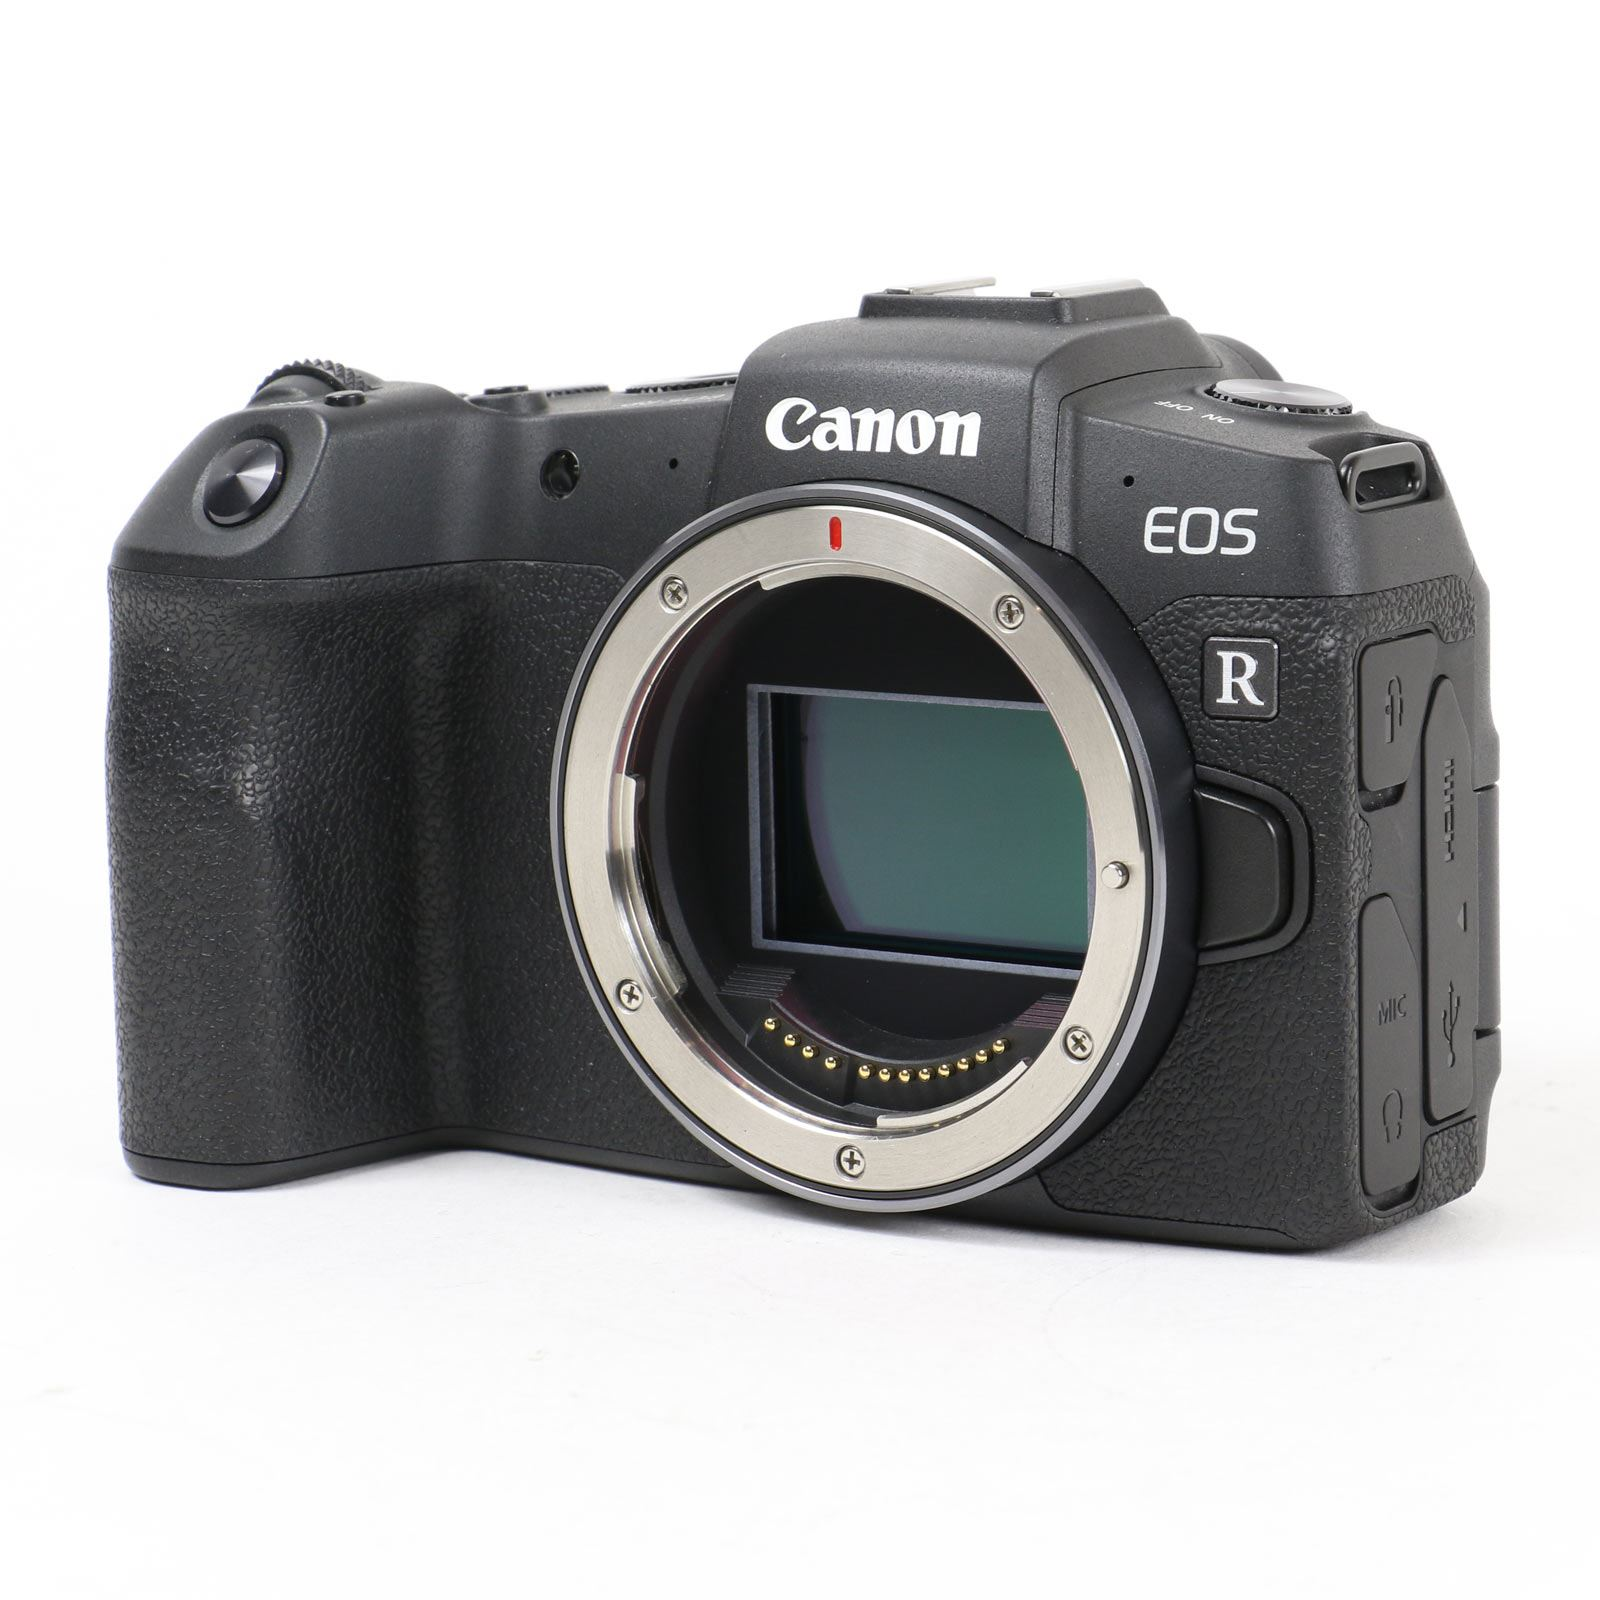 Image of Used Canon EOS RP Digital Camera - Body Only